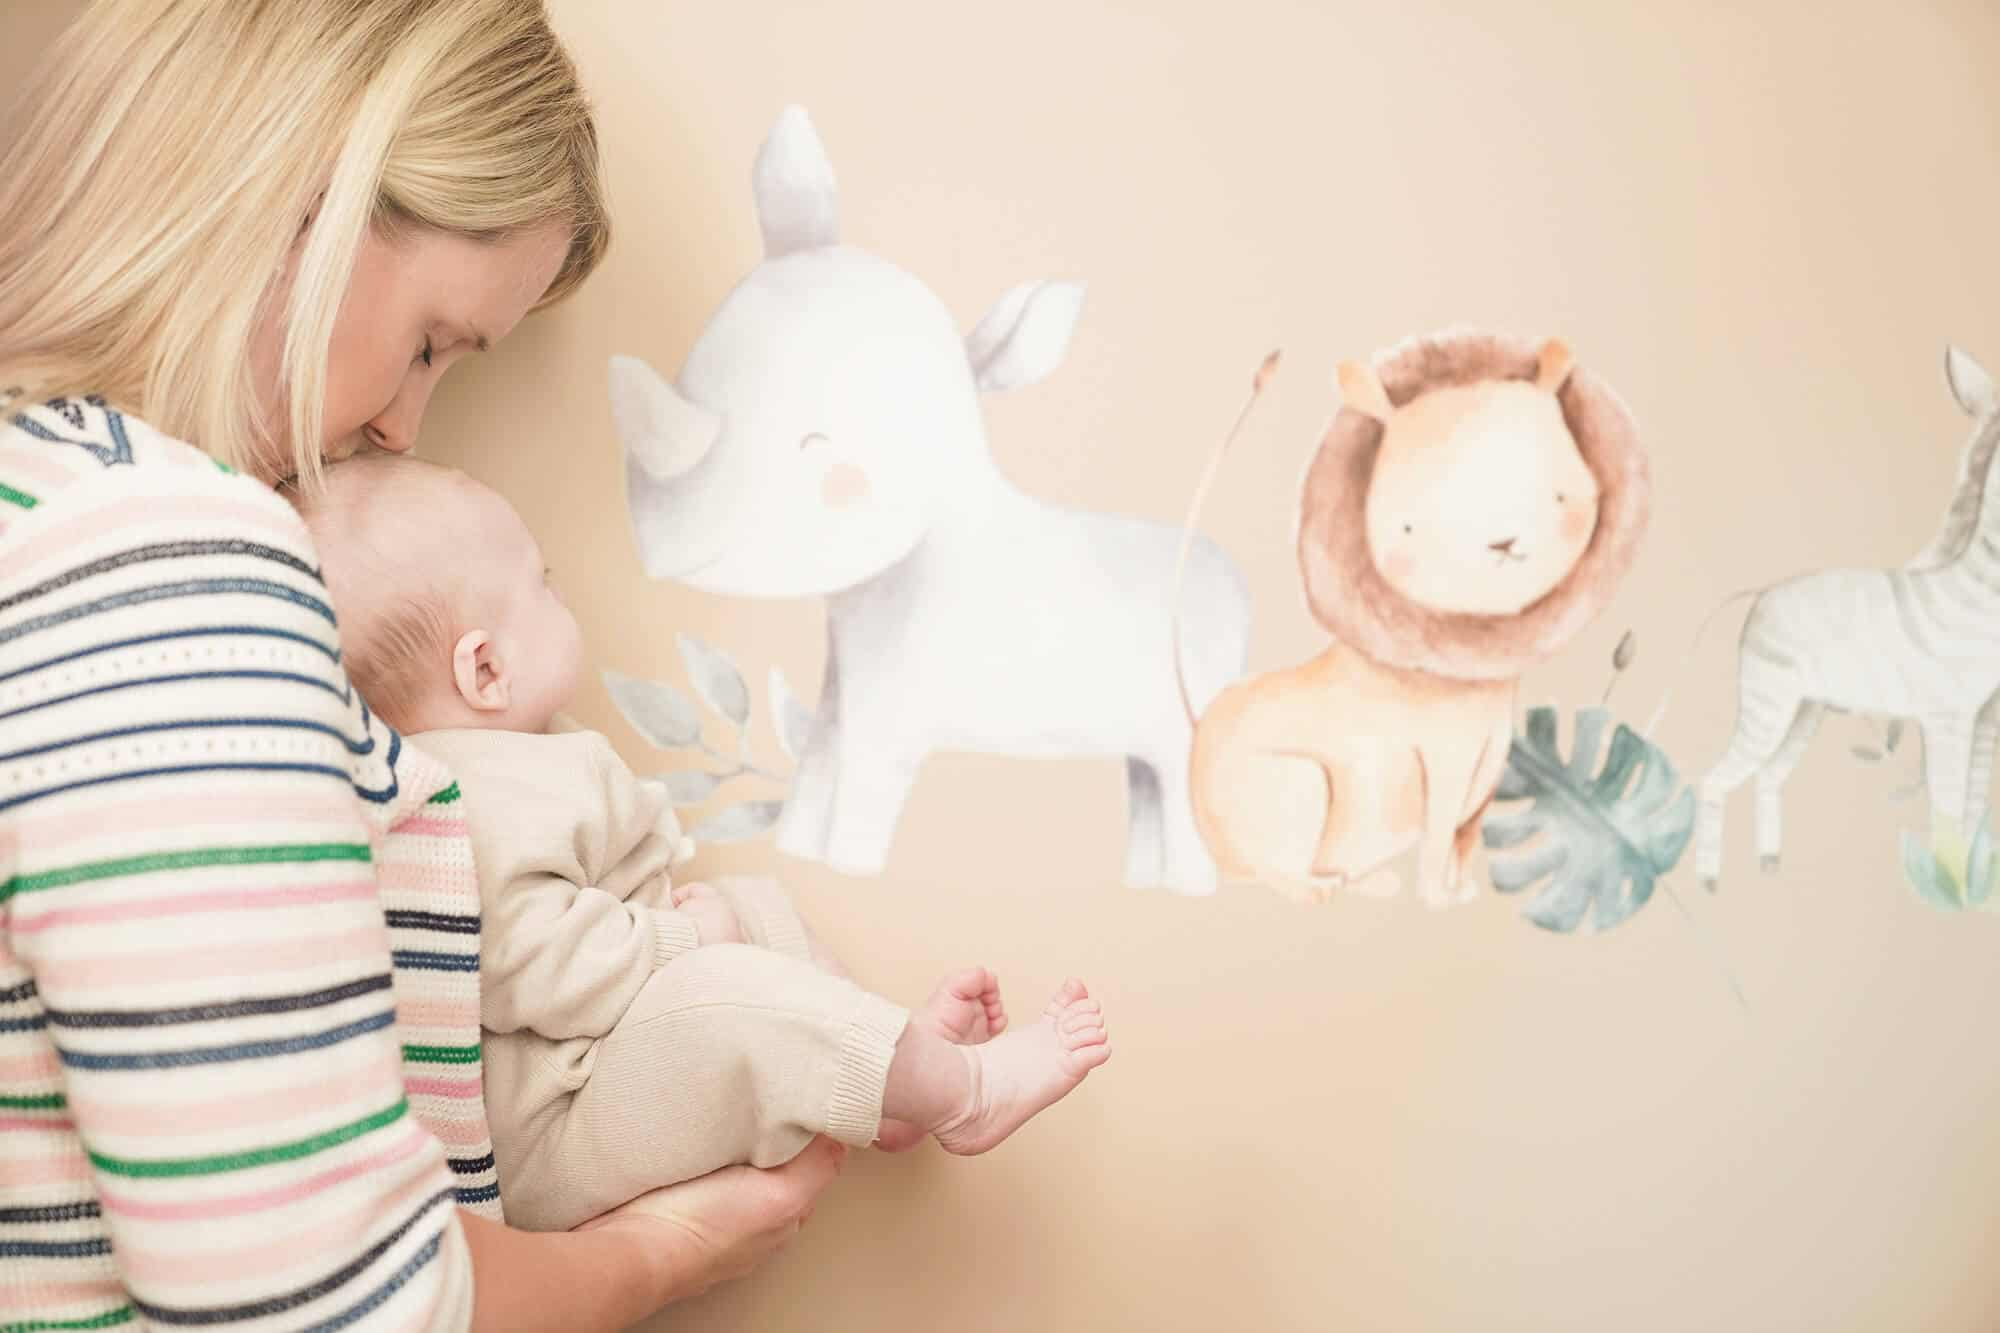 Baby photographer located in Bromley photographing nursery details